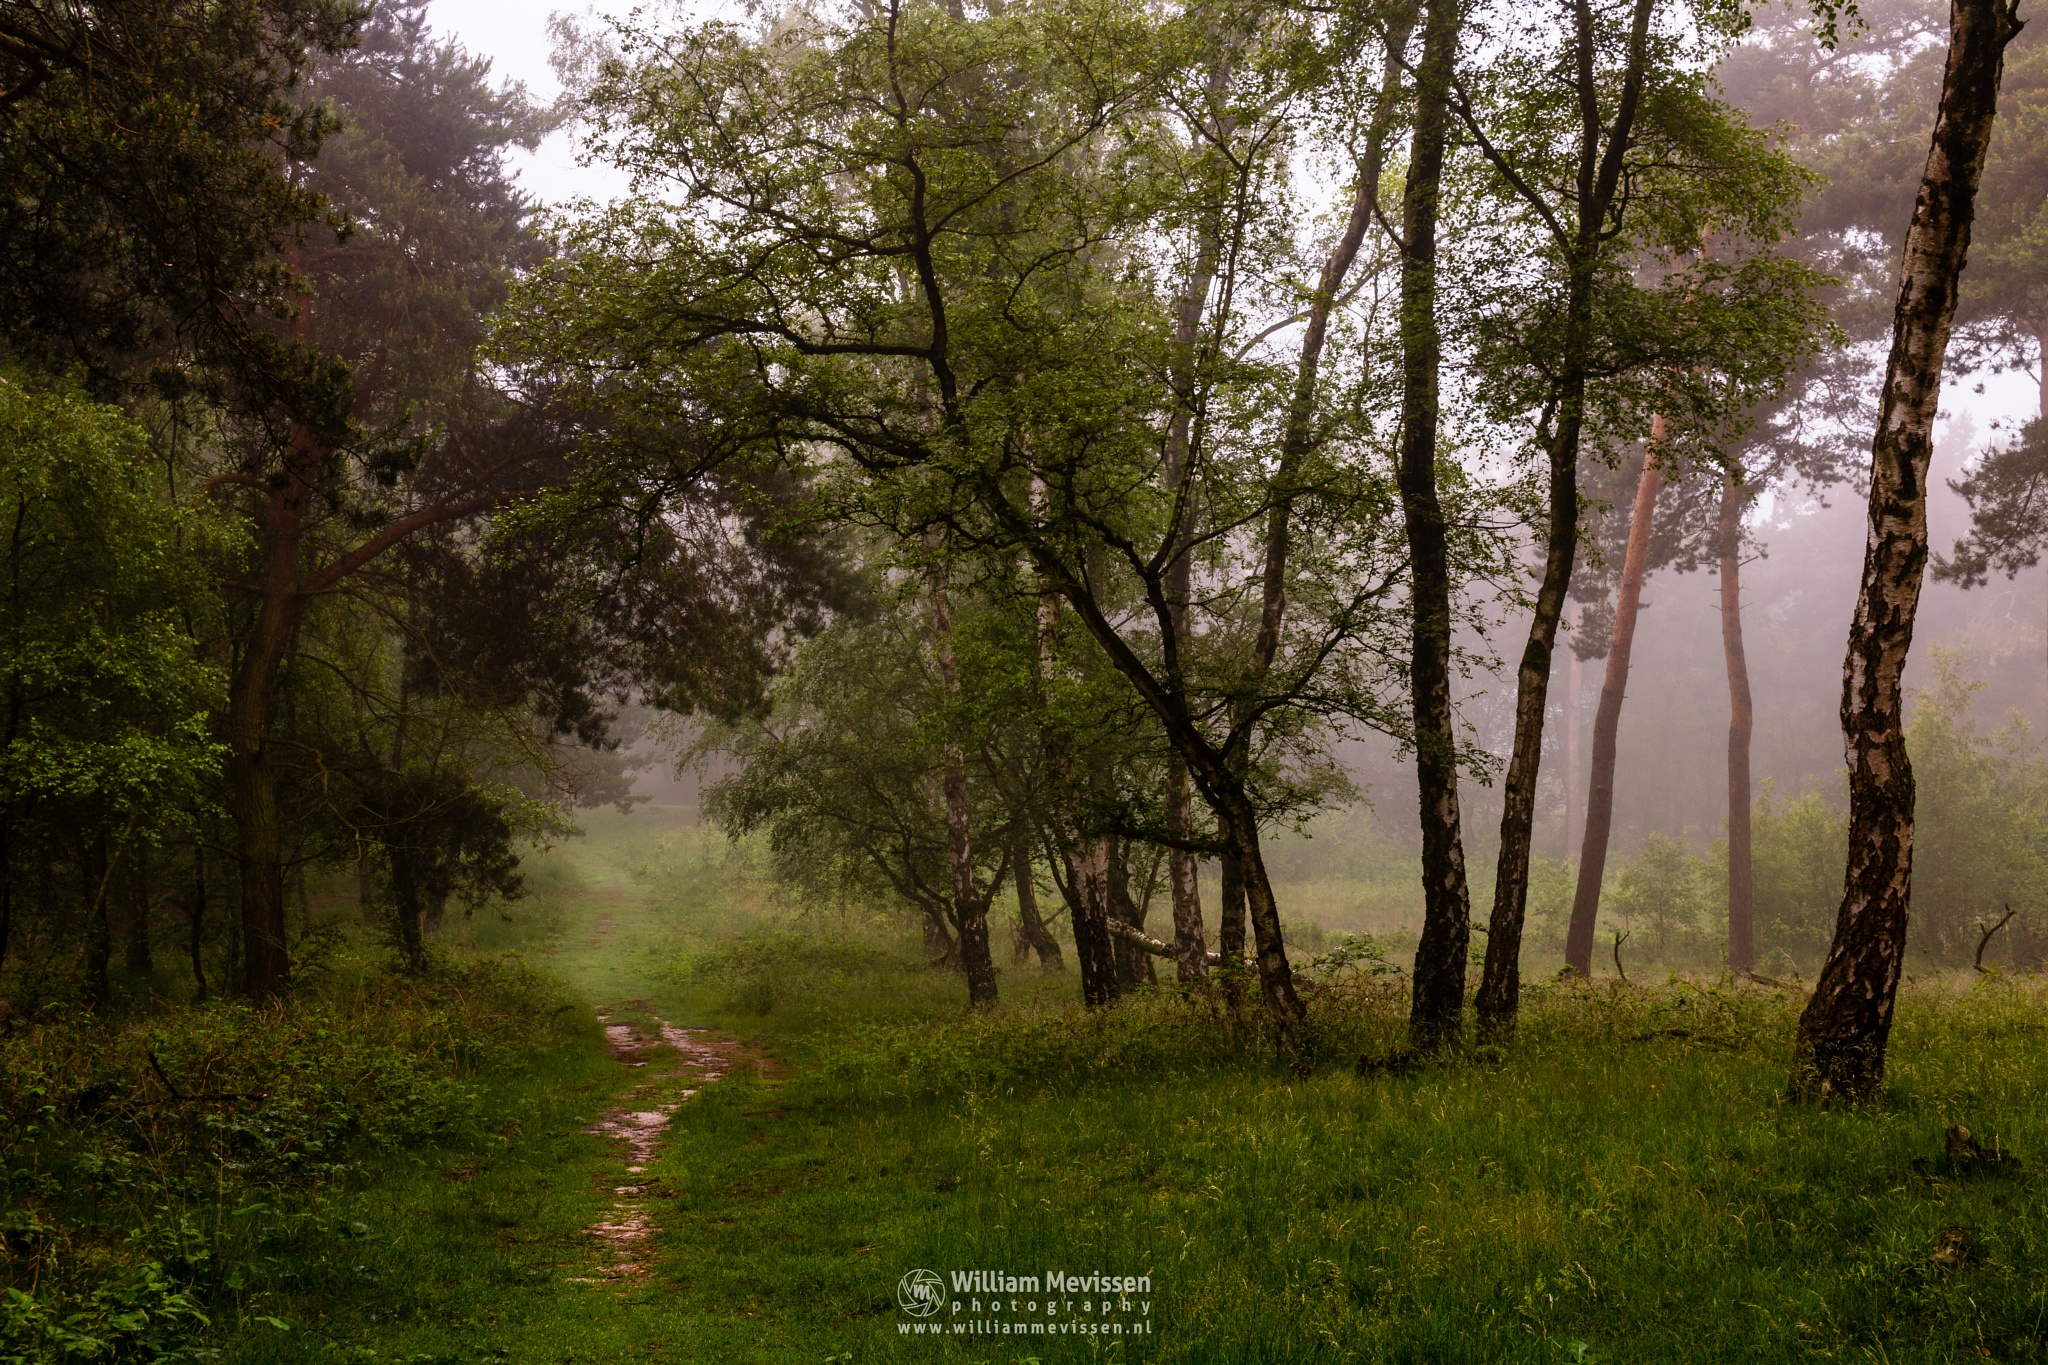 Into The Foggy Forest by William Mevissen